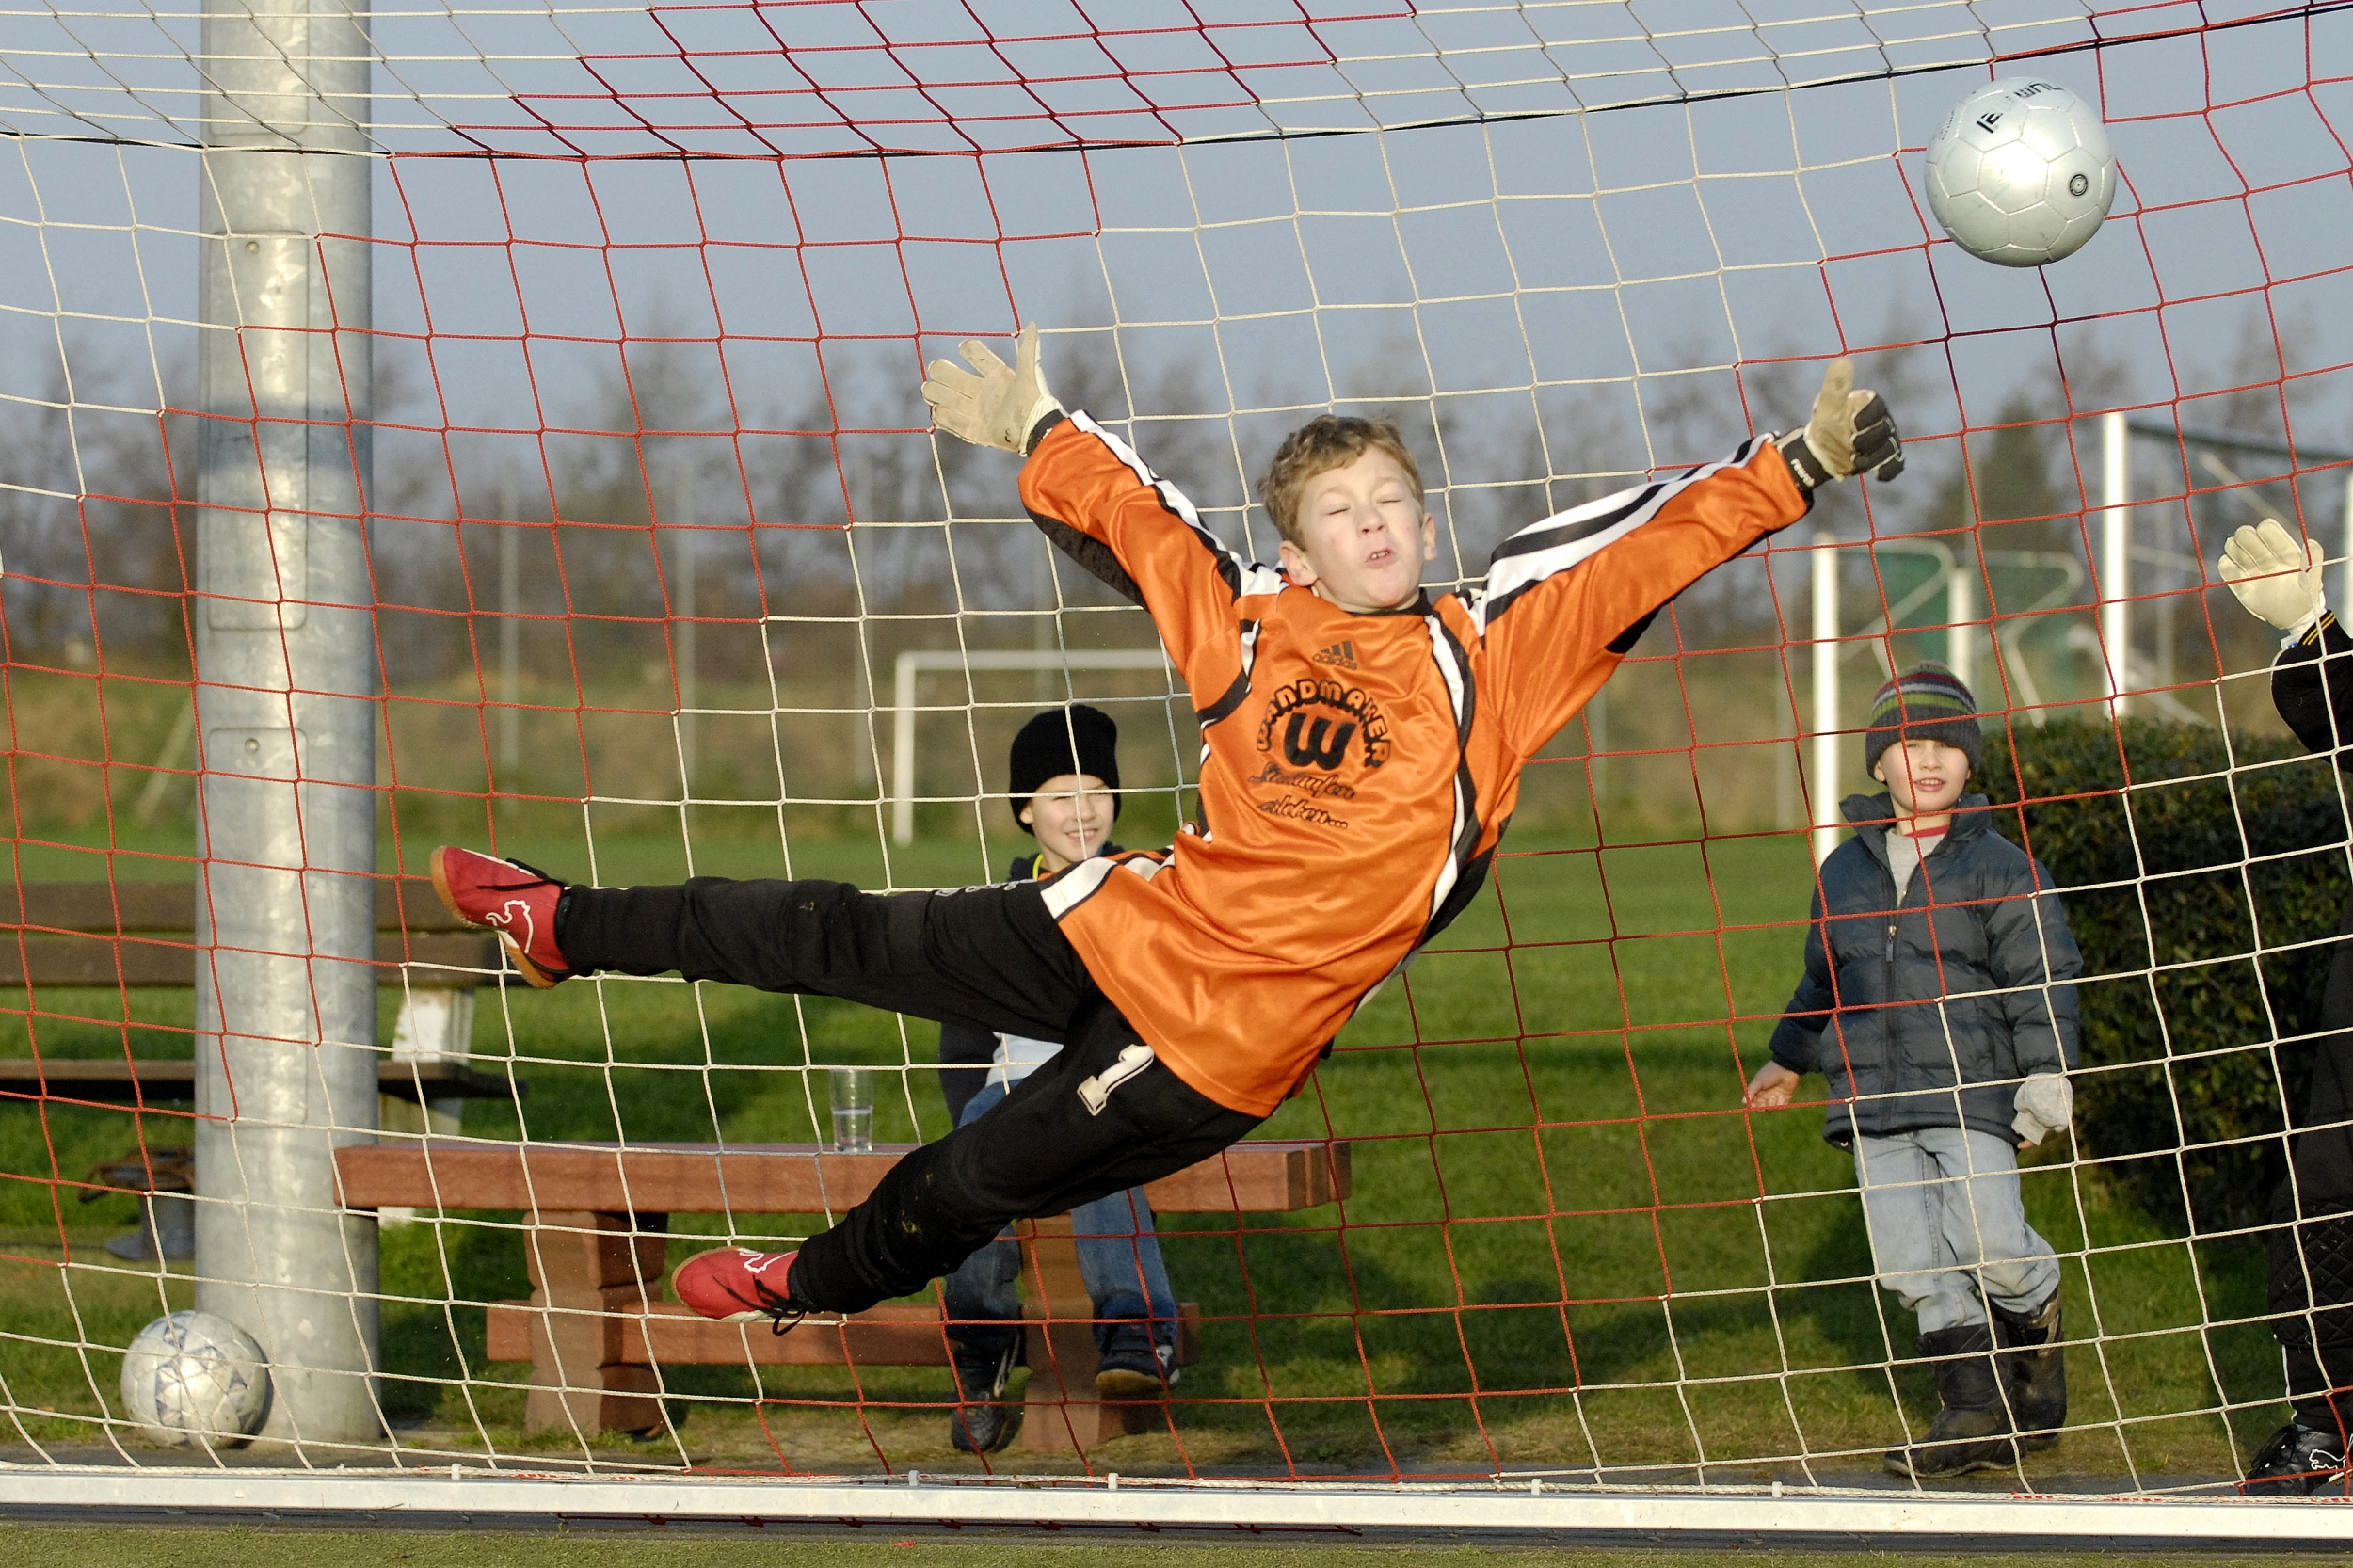 File:Soccer Youth Goal Keeper.jpg - Wikipedia